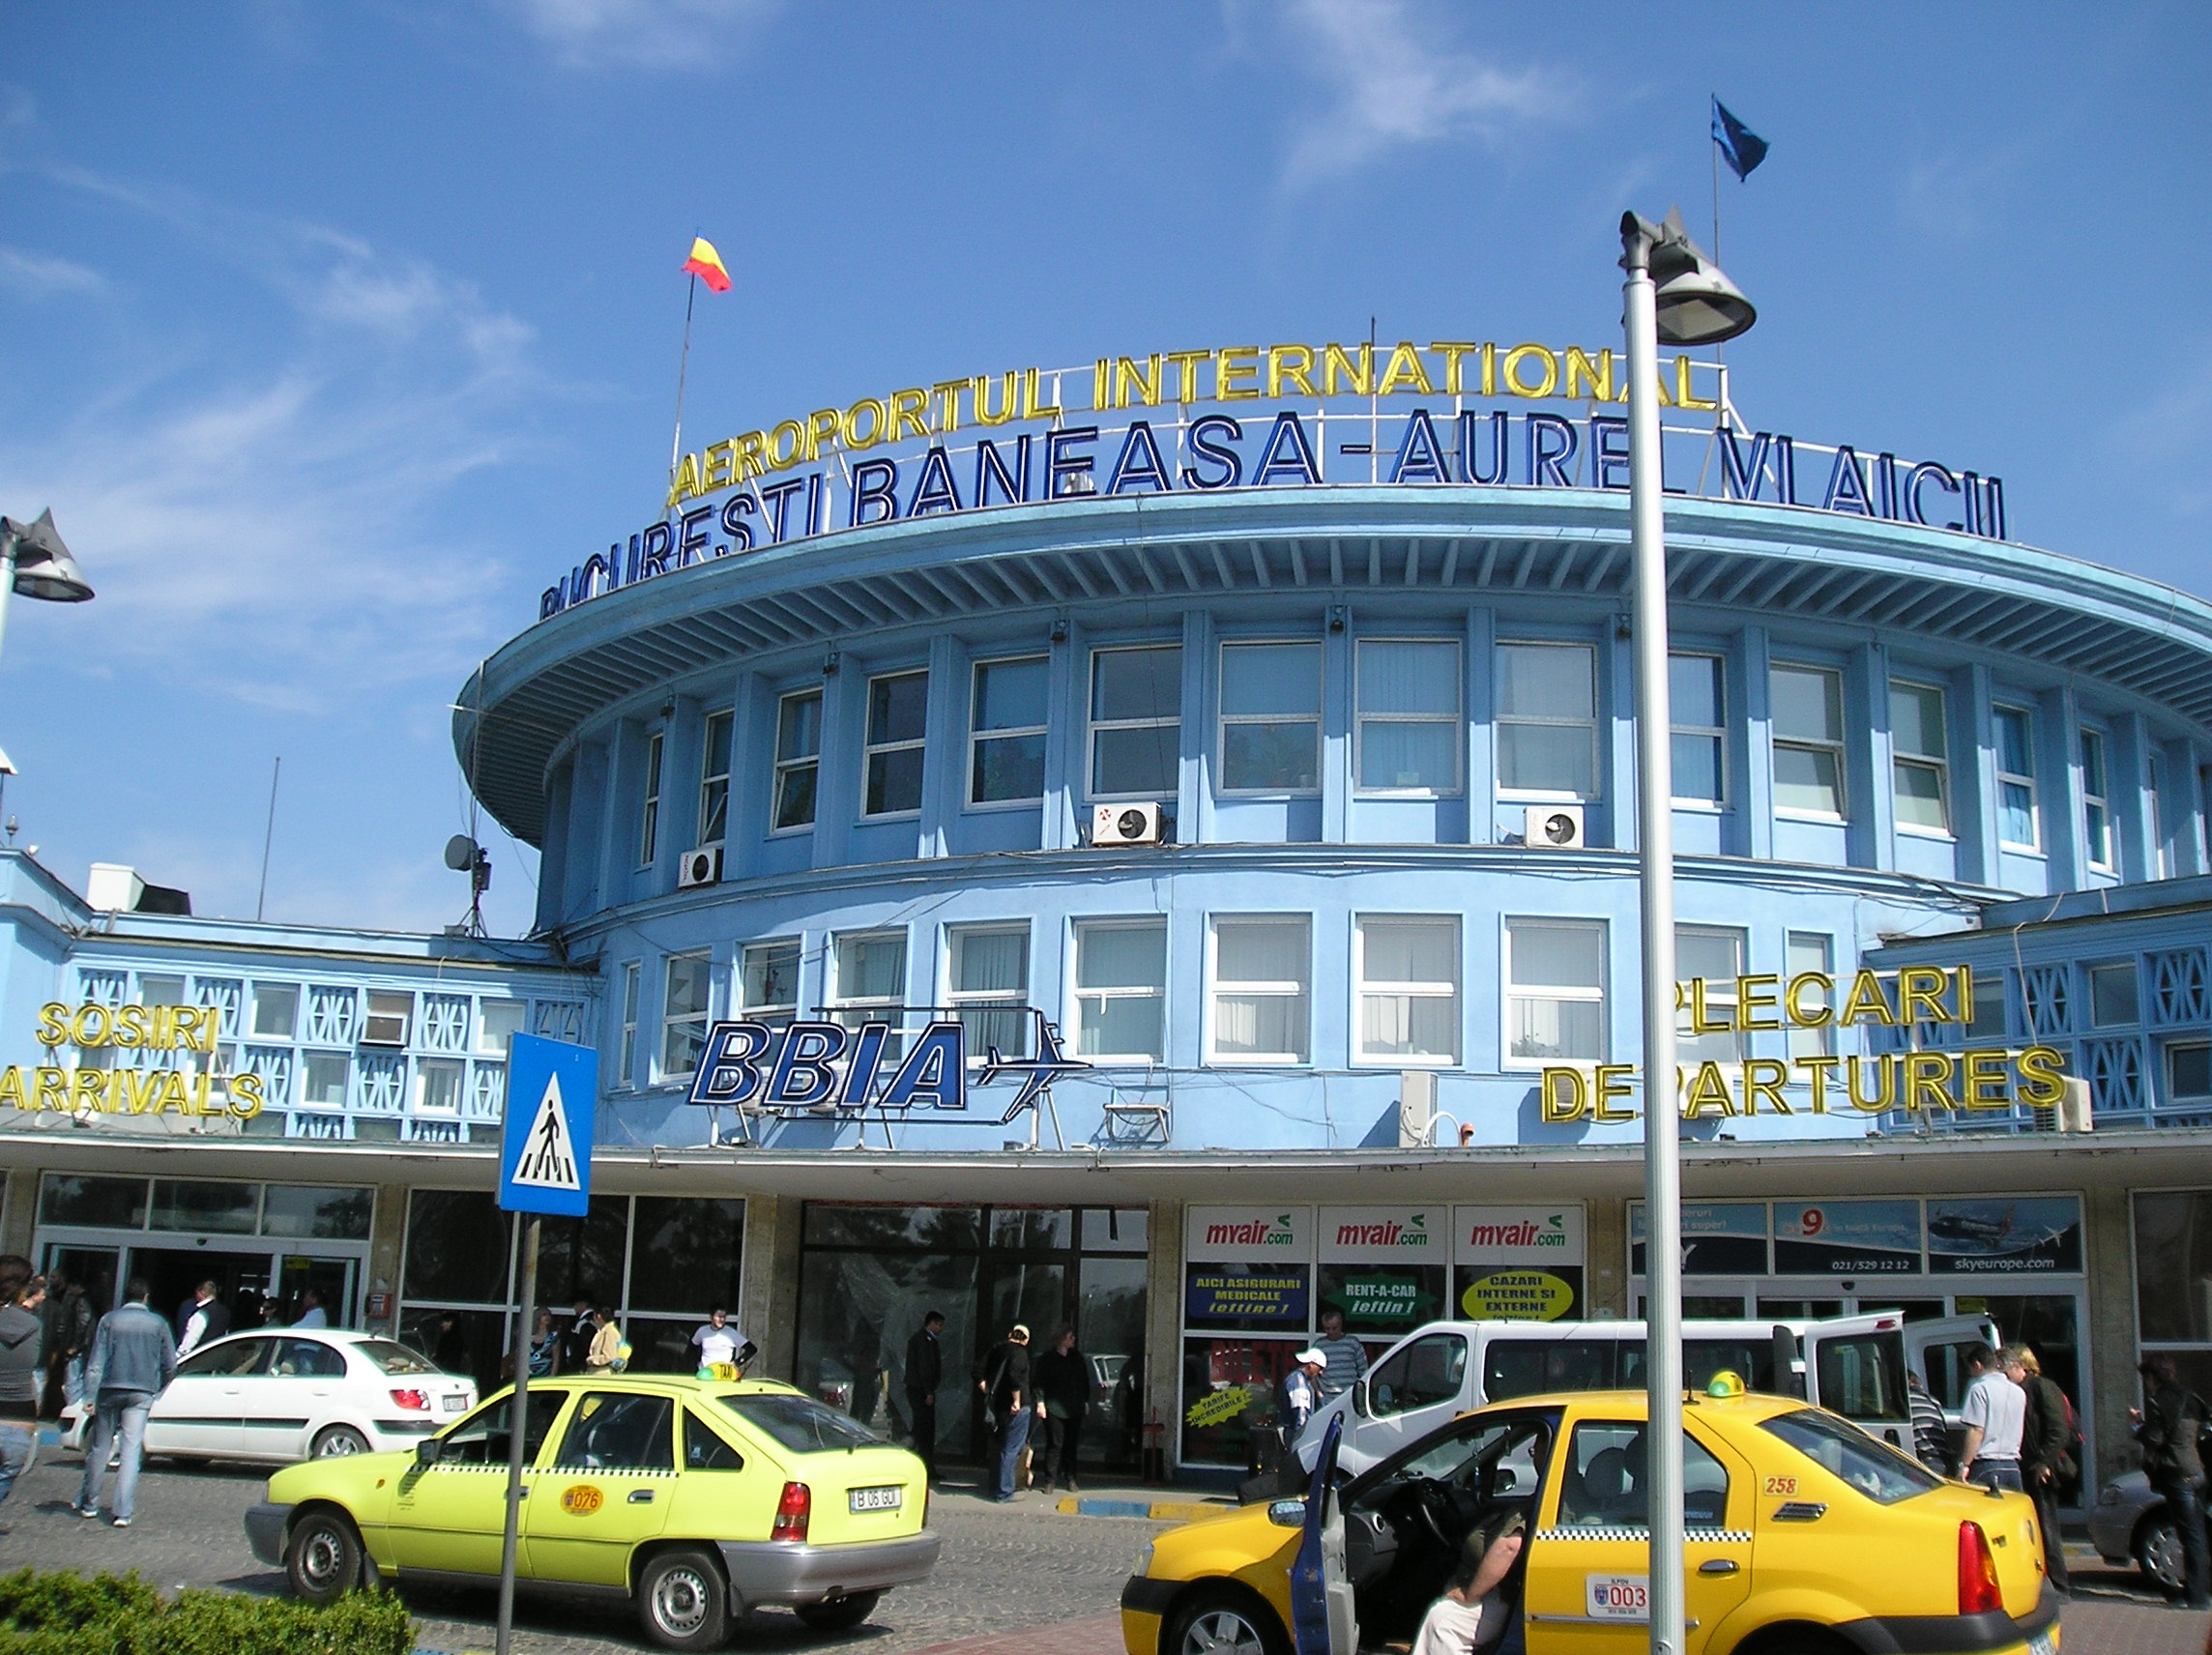 Bucharestbaneasaairport.jpg